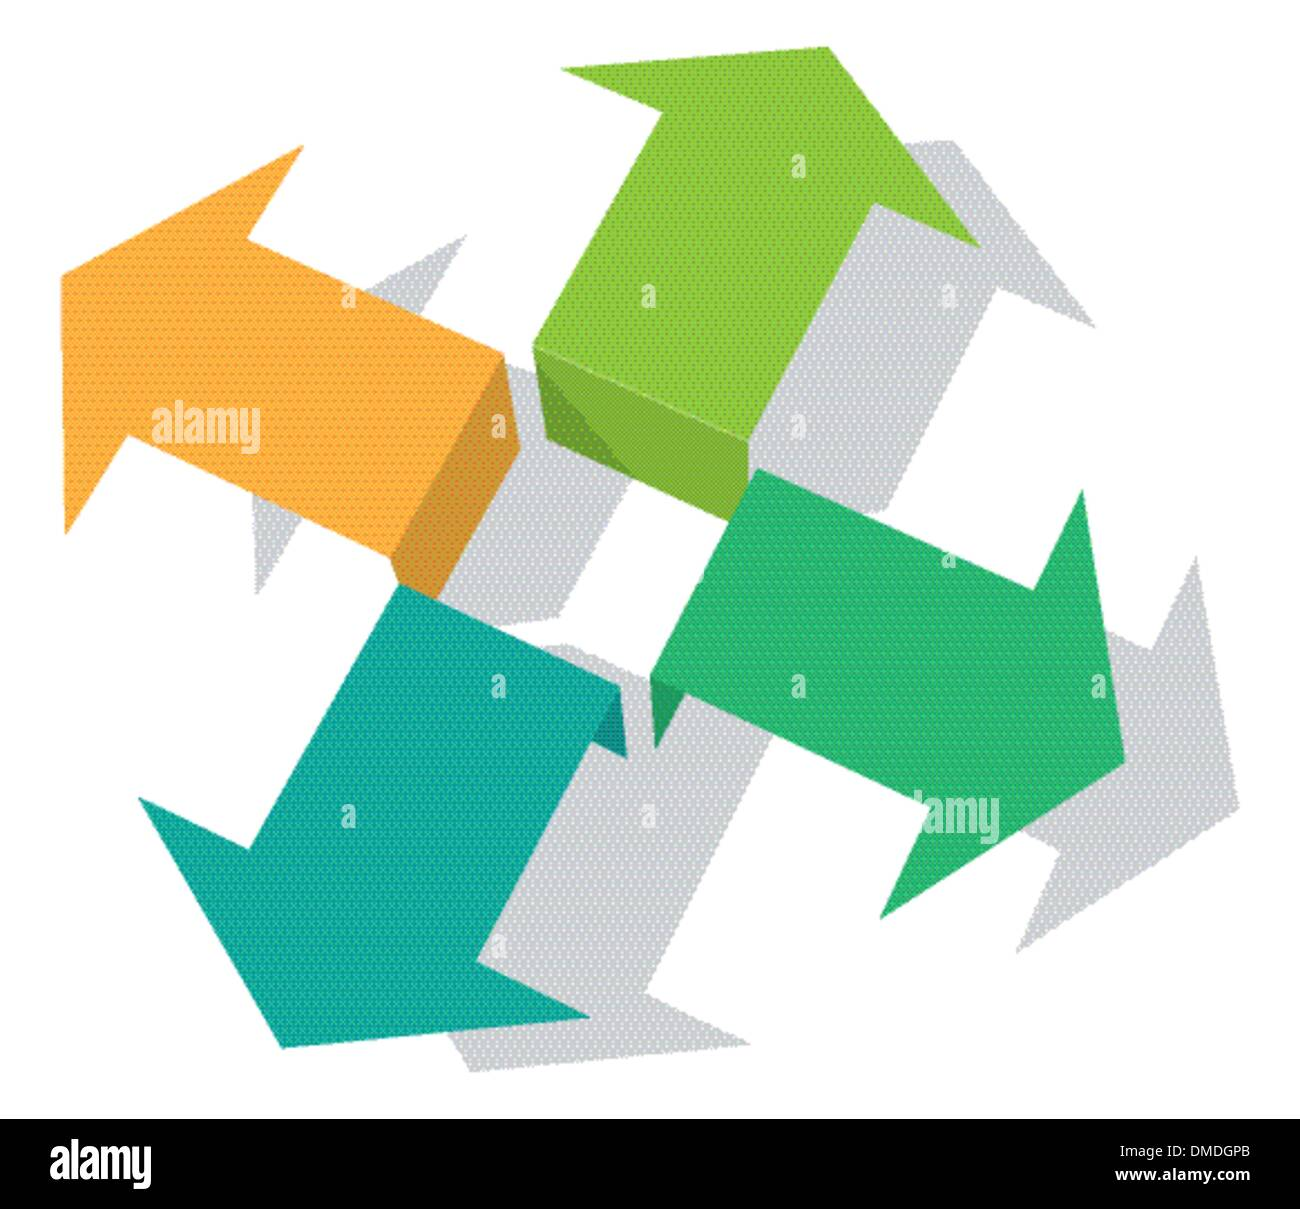 Four green arrows pointing into different directions - Stock Image